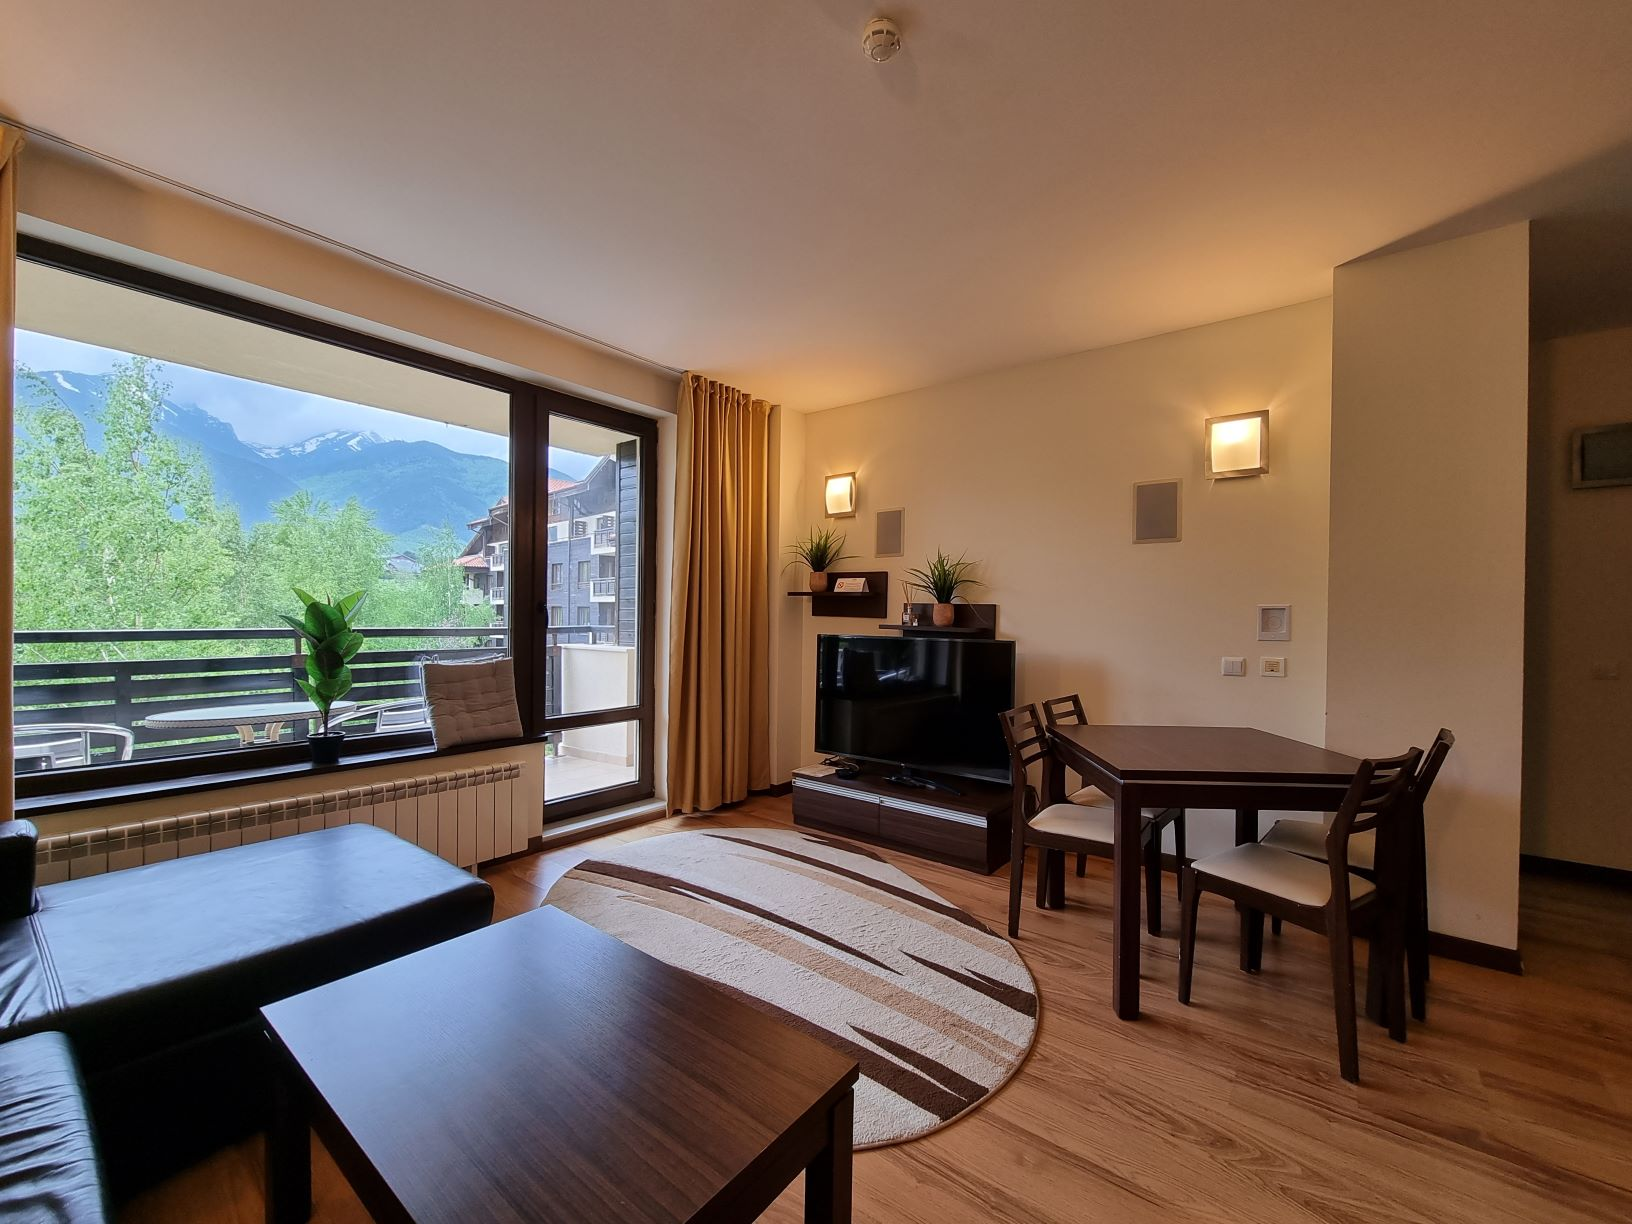 2 bedroom apartment with mountain view in Terra Complex